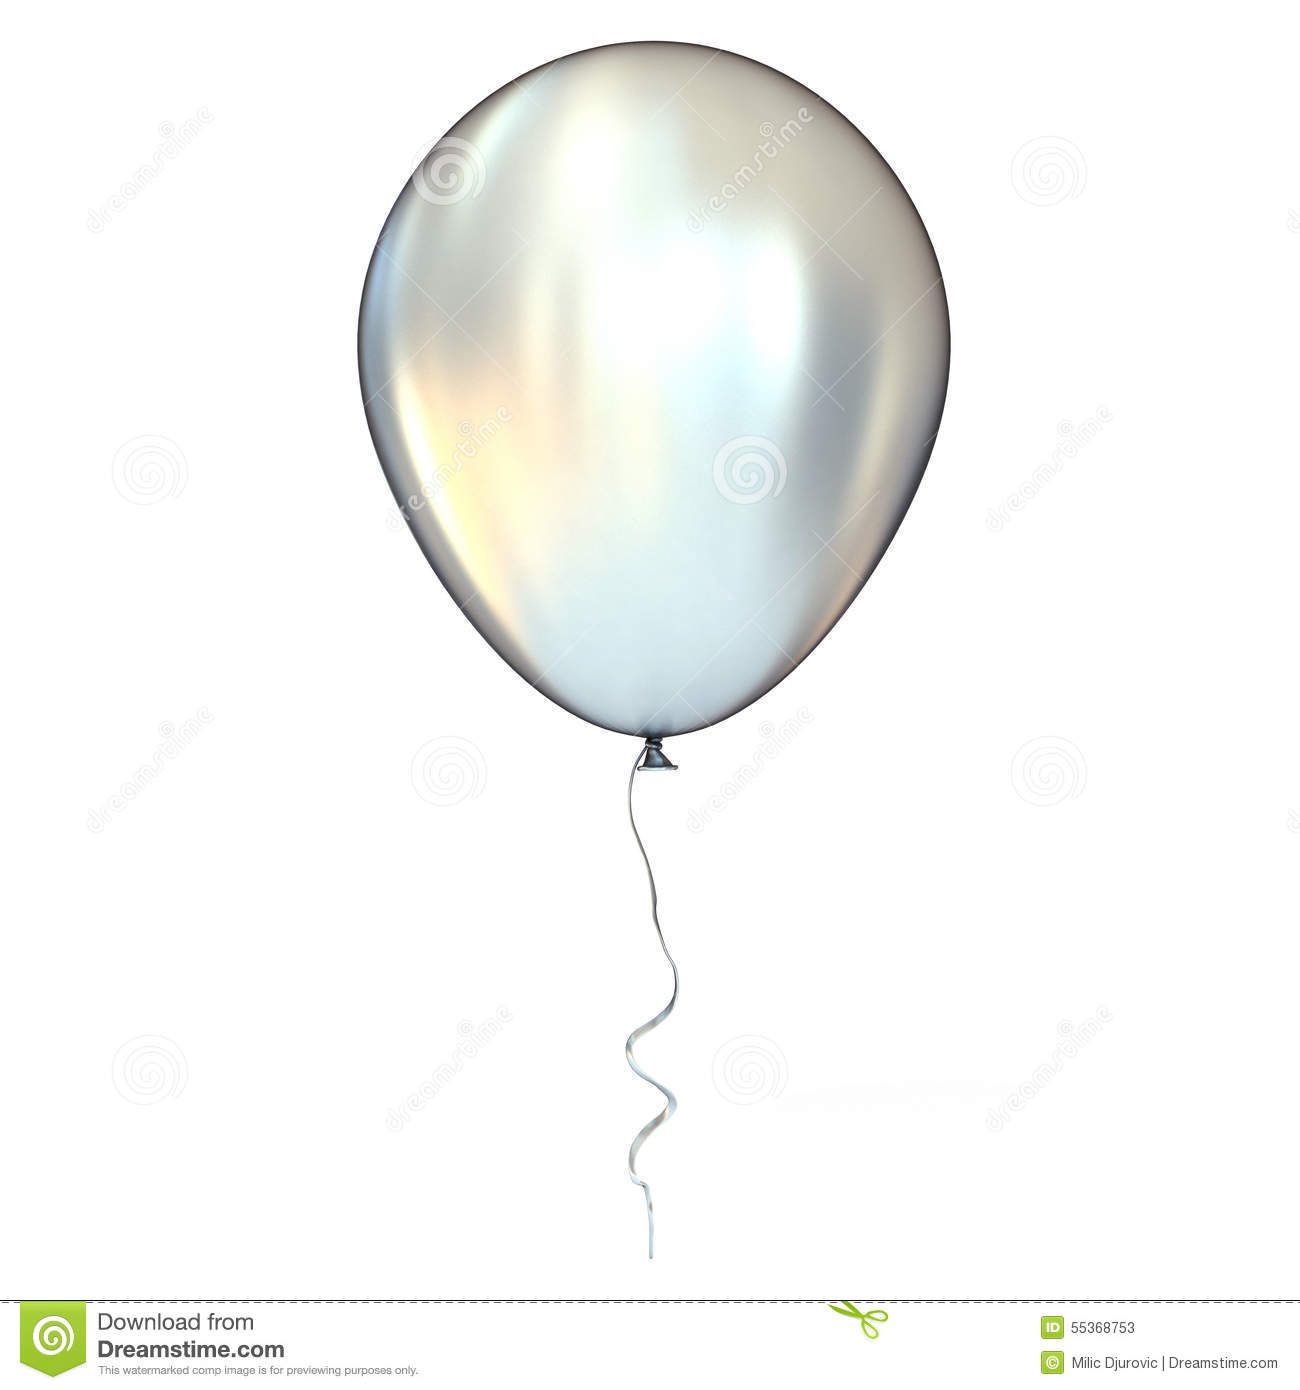 Chrome, Silver, Metallic Balloon With Ribbon Stock Photo - Image ...